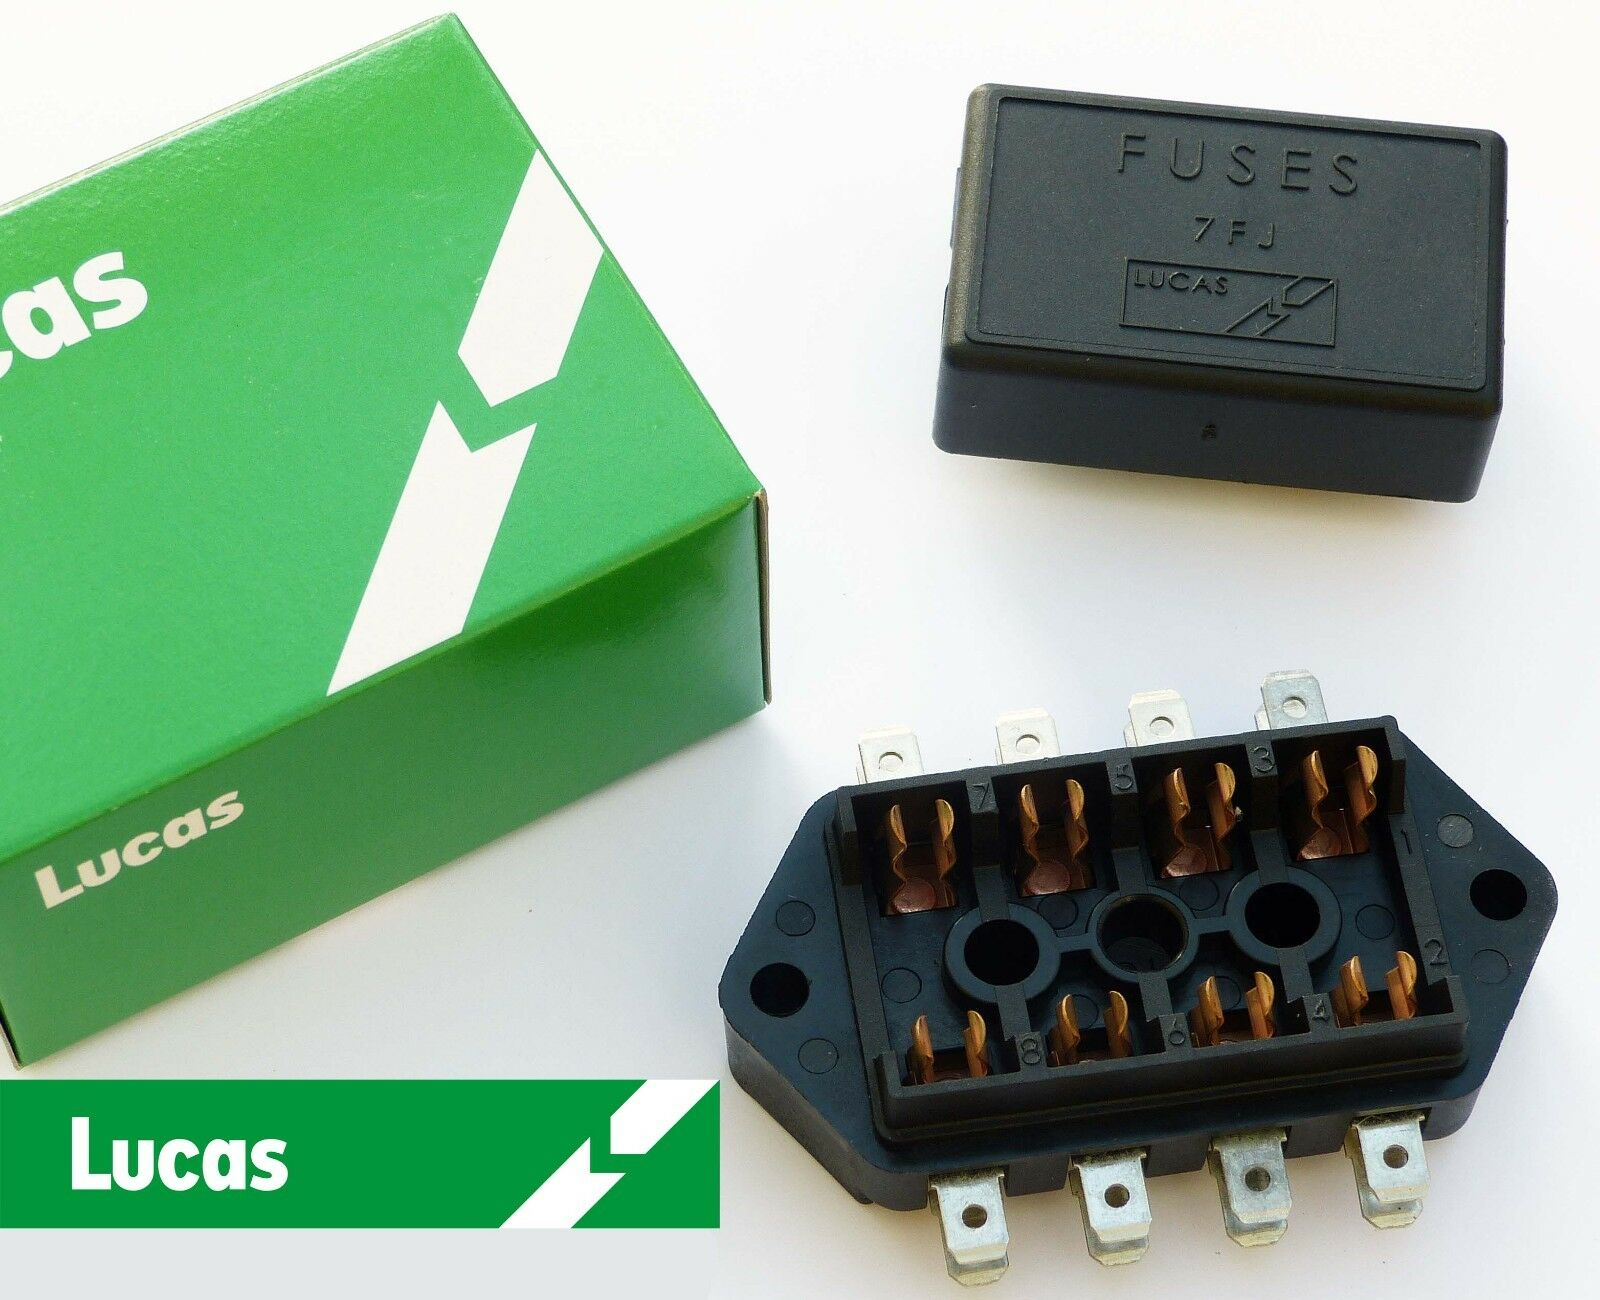 Lucas 7fj 4 Way Fuse Box Cover 37420 Rtc440a For Triumph Boxes From The 1950 1 Of See More